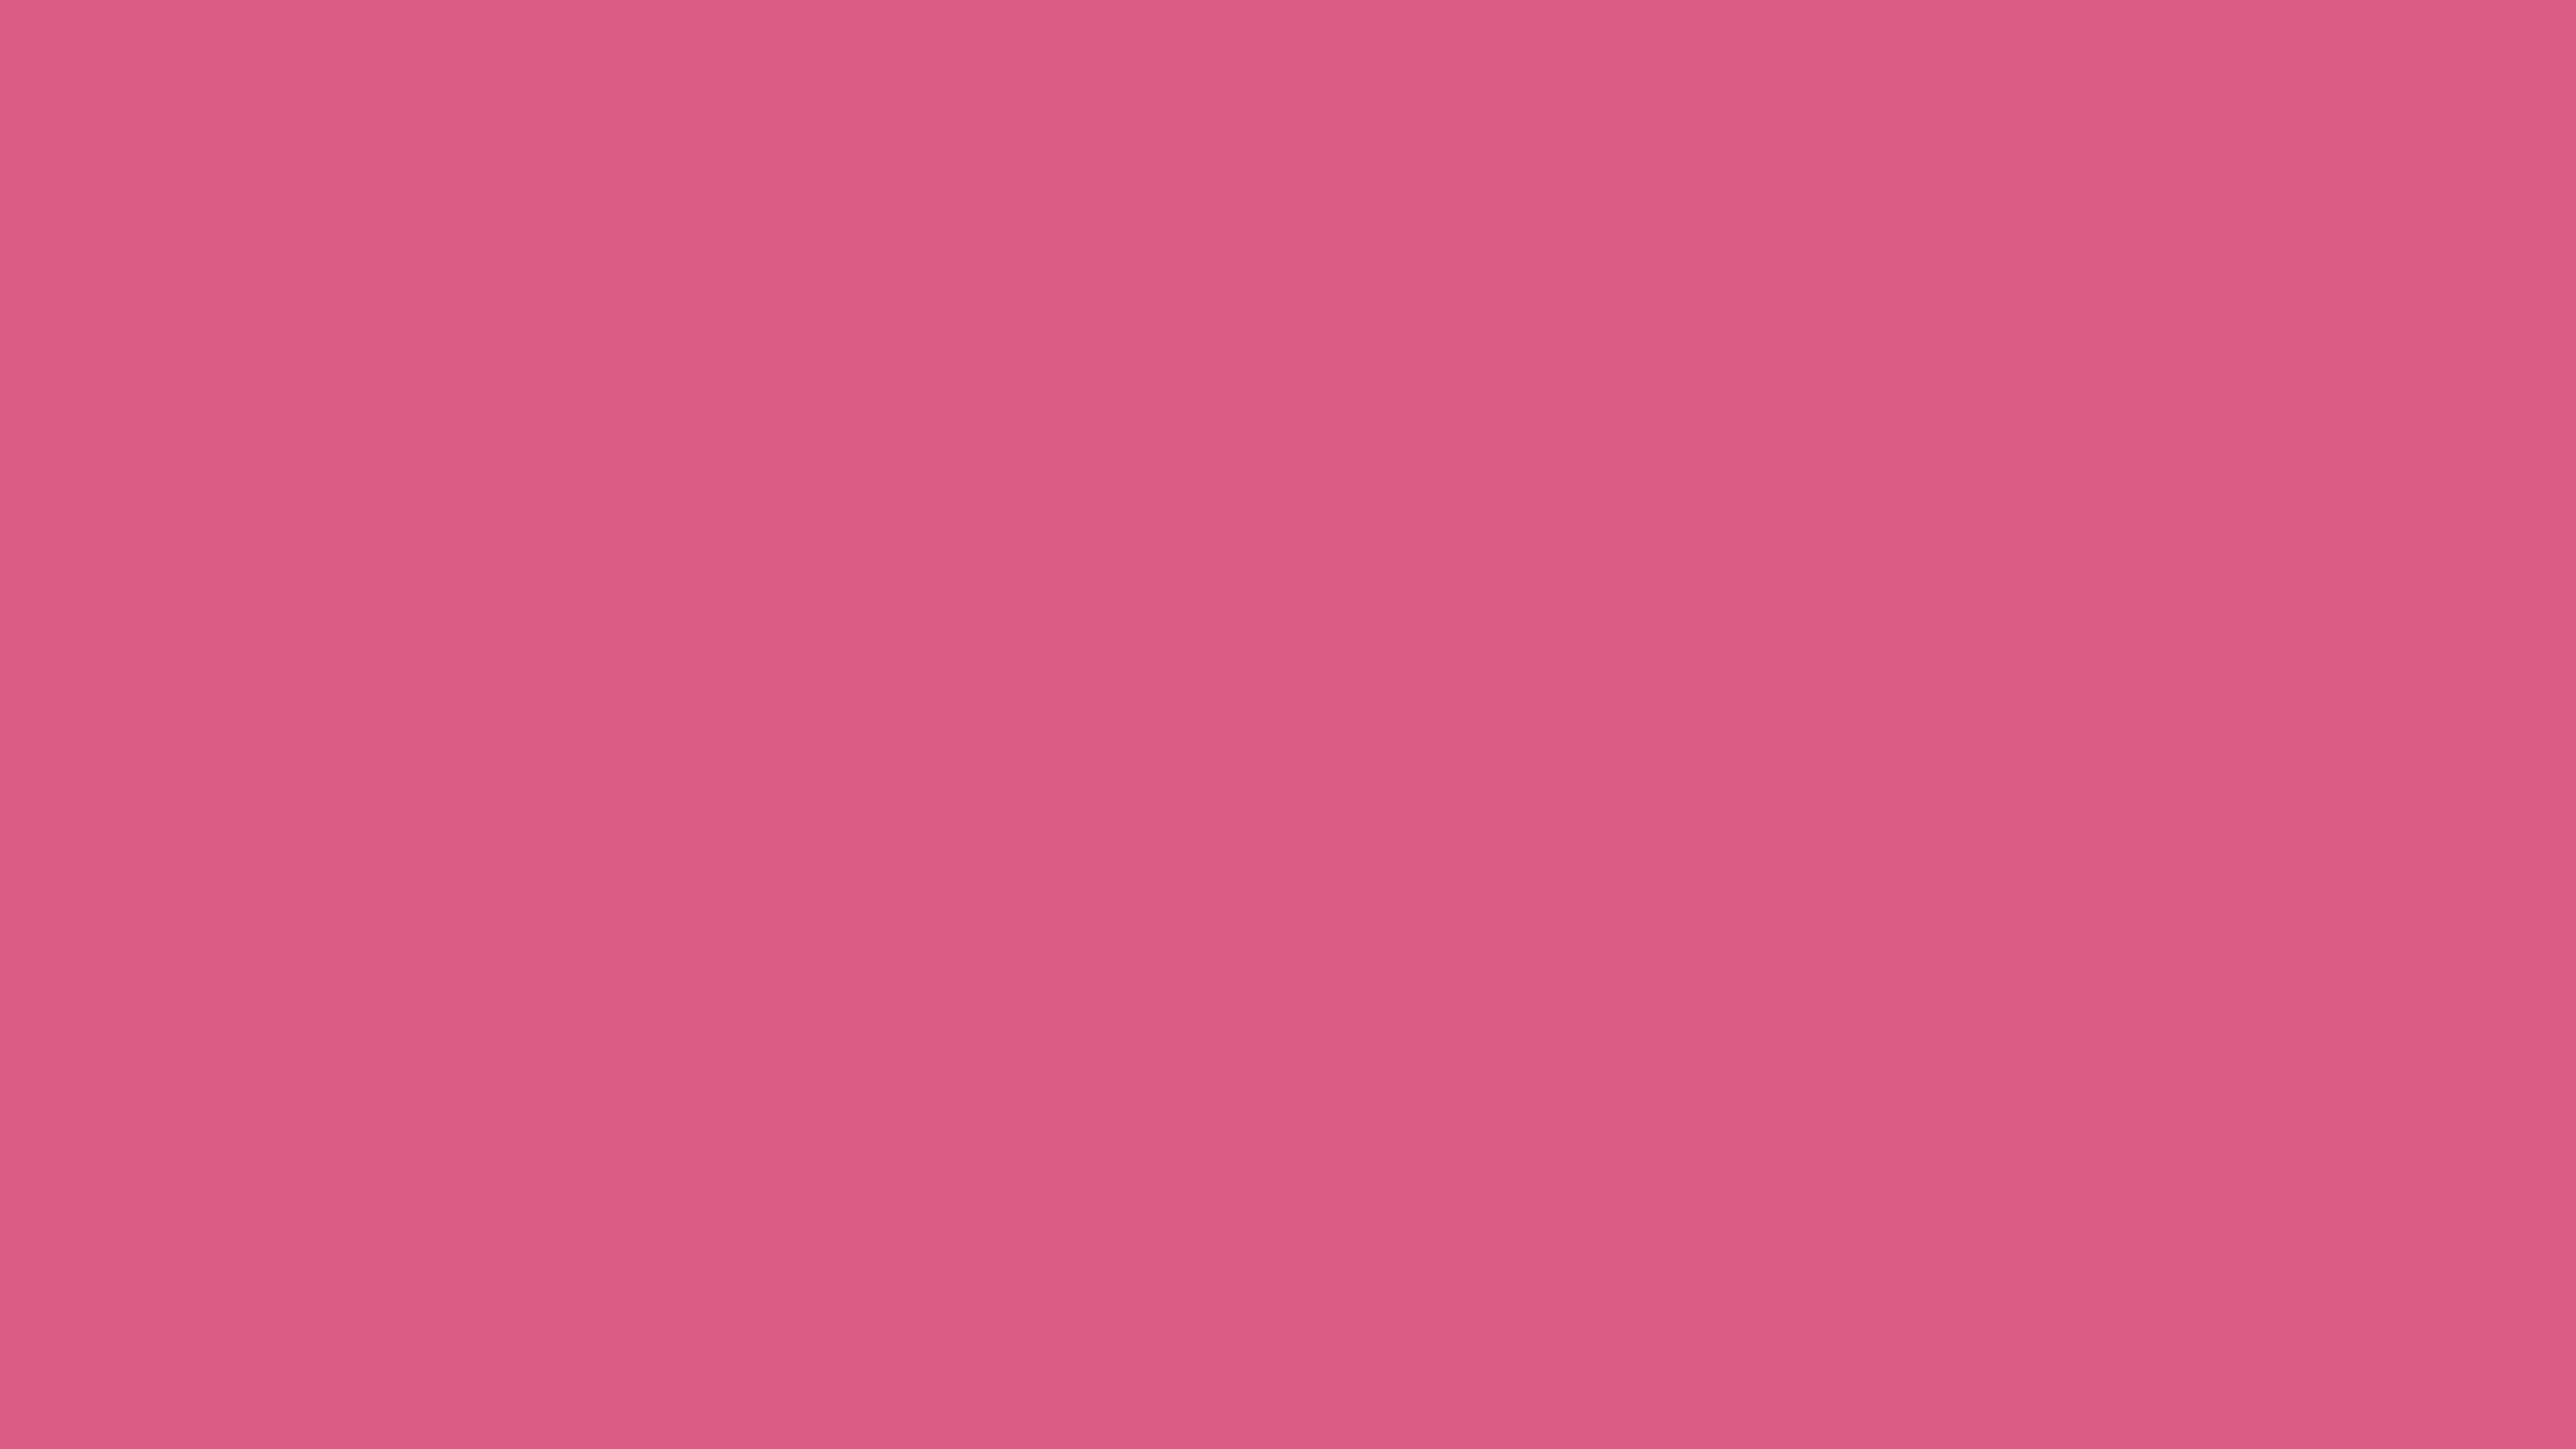 3840x2160 Blush Solid Color Background